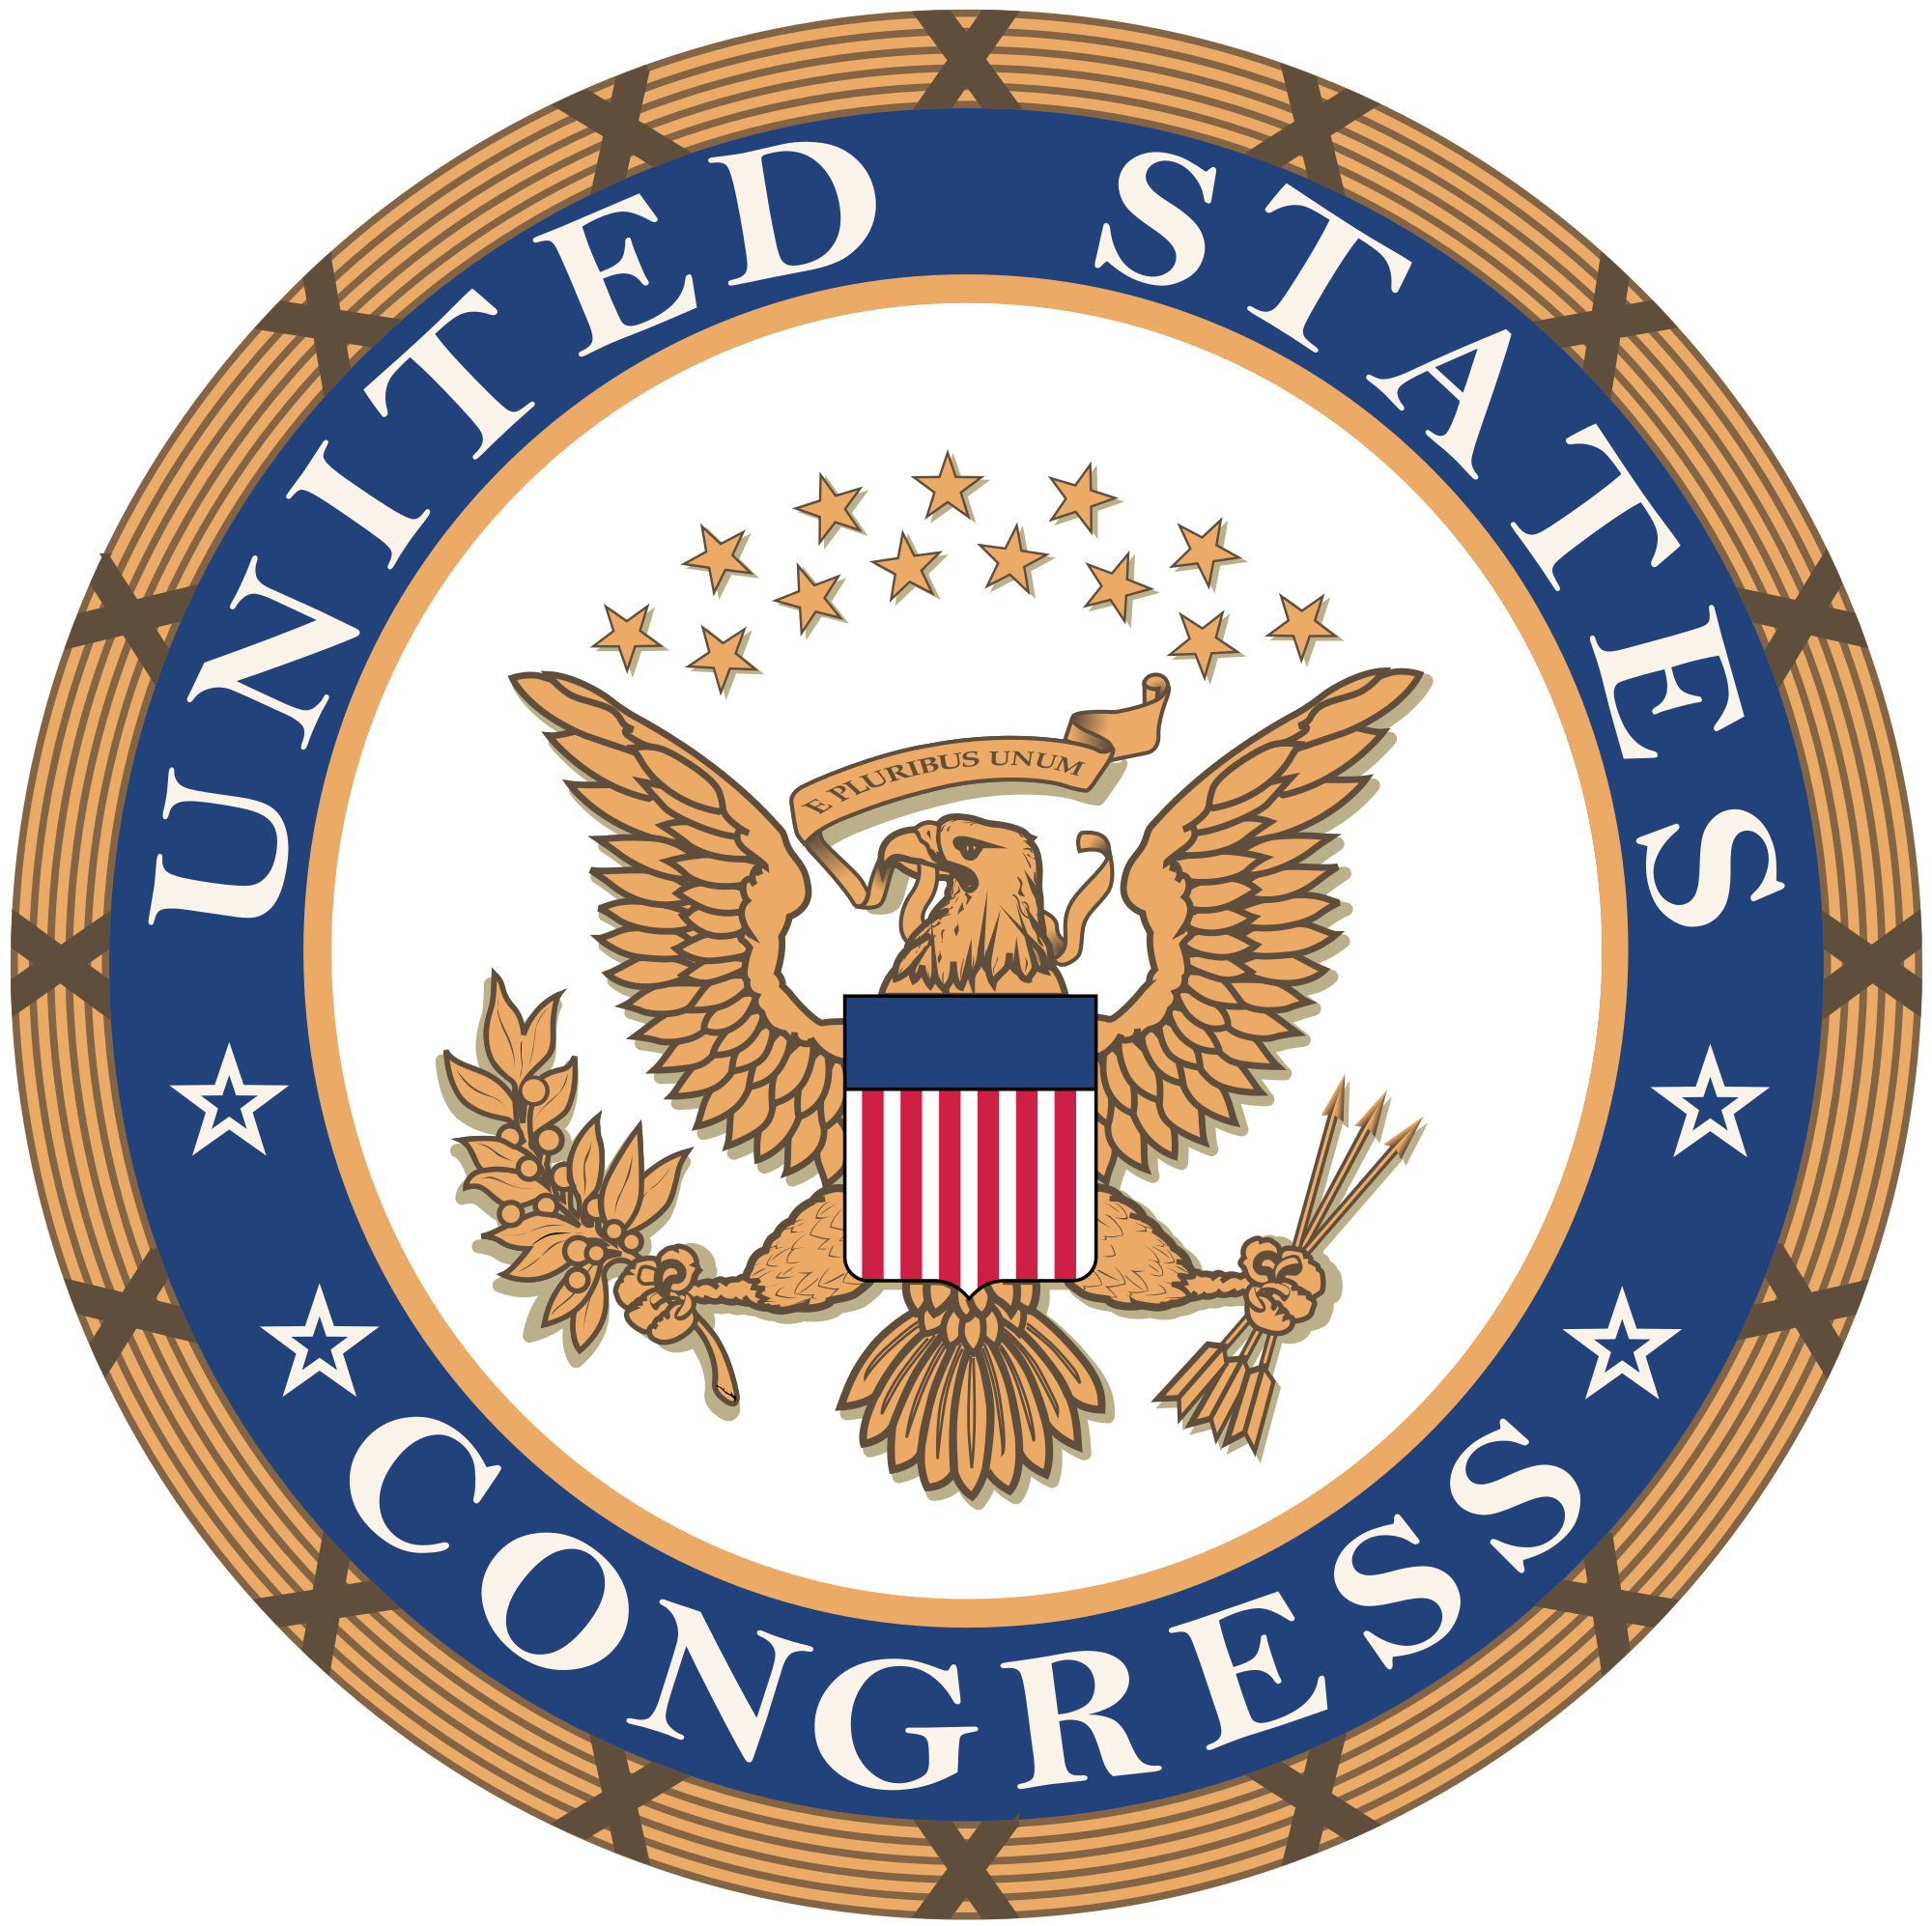 Us Lawmakers Petition Nigeria Over Attack On Journalists Activists United States Congress Members Of Congress United States Constitution